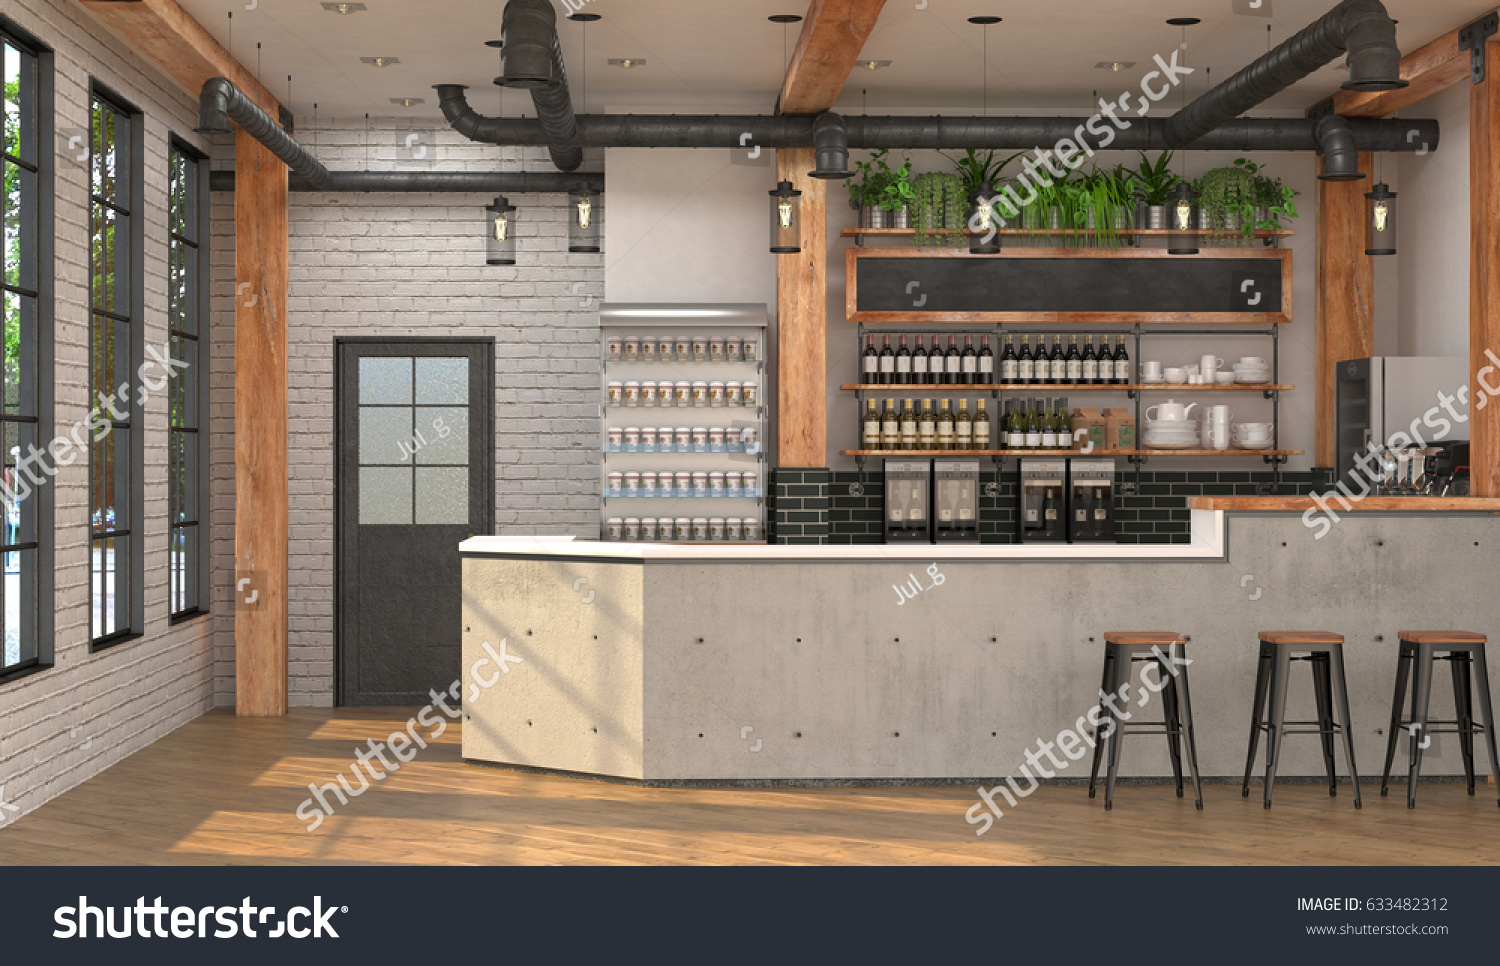 decoration interieur vintage moderne loft turquoise vintage d salon en styles en photos Modern design of the bar in loft style. 3D visualization of the interior of  a